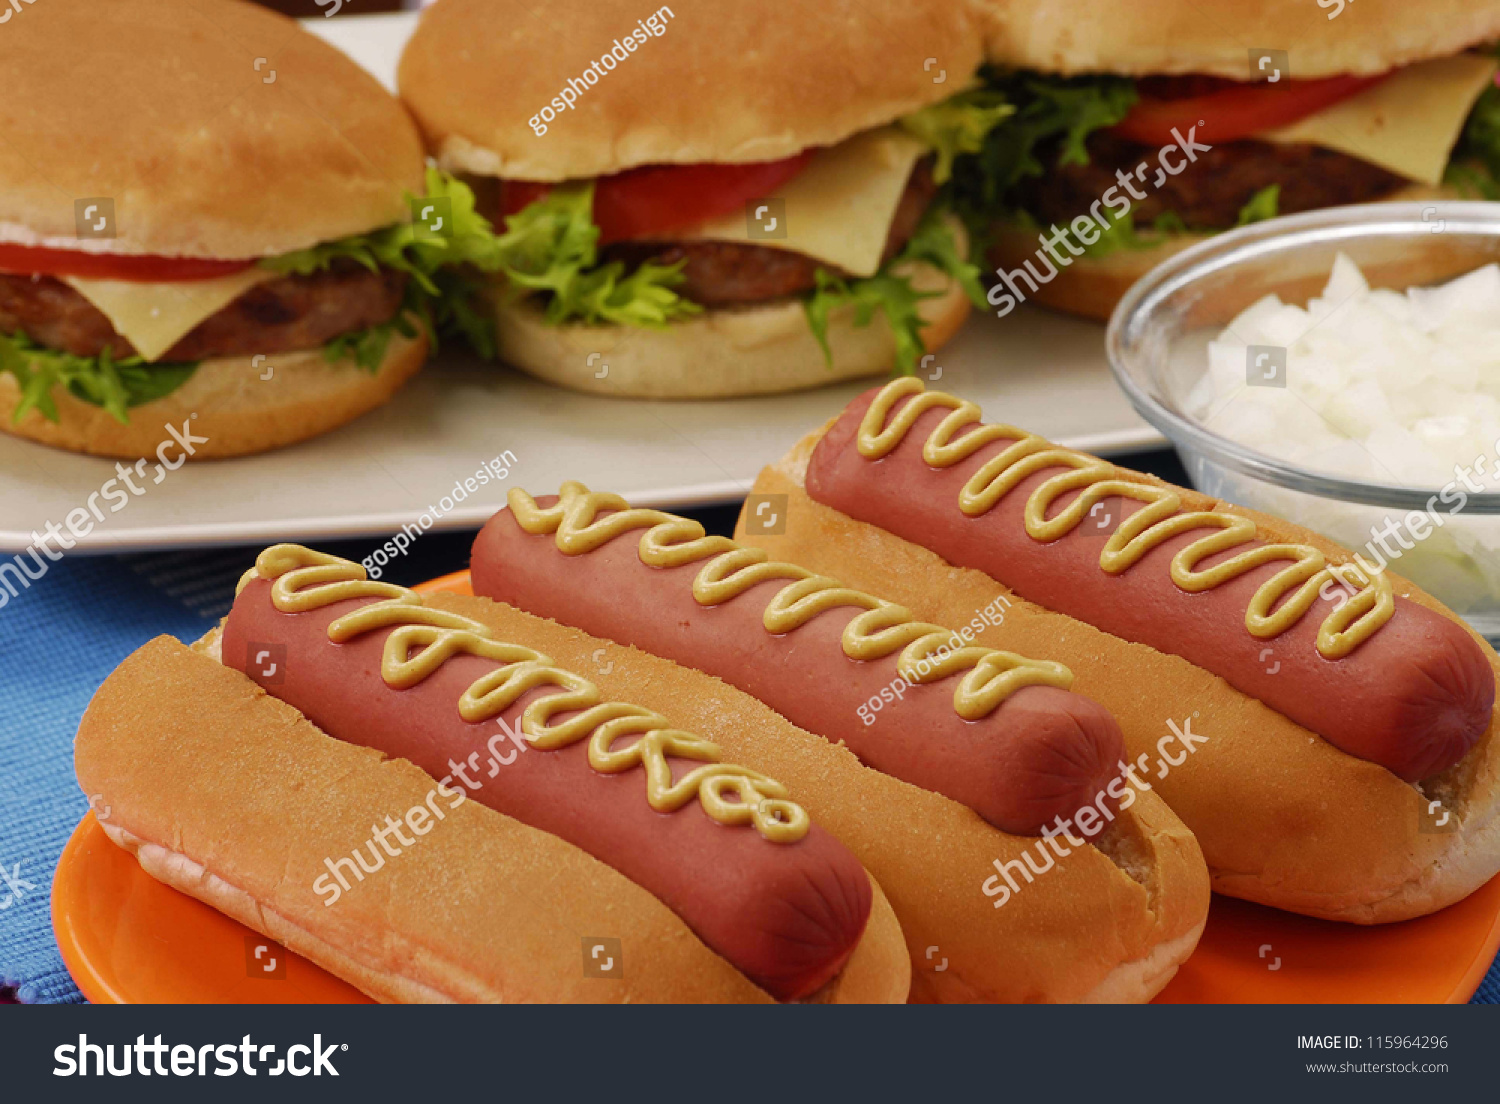 hot dogshamburgers ingredients fast food composition stock photo 115964296 shutterstock. Black Bedroom Furniture Sets. Home Design Ideas